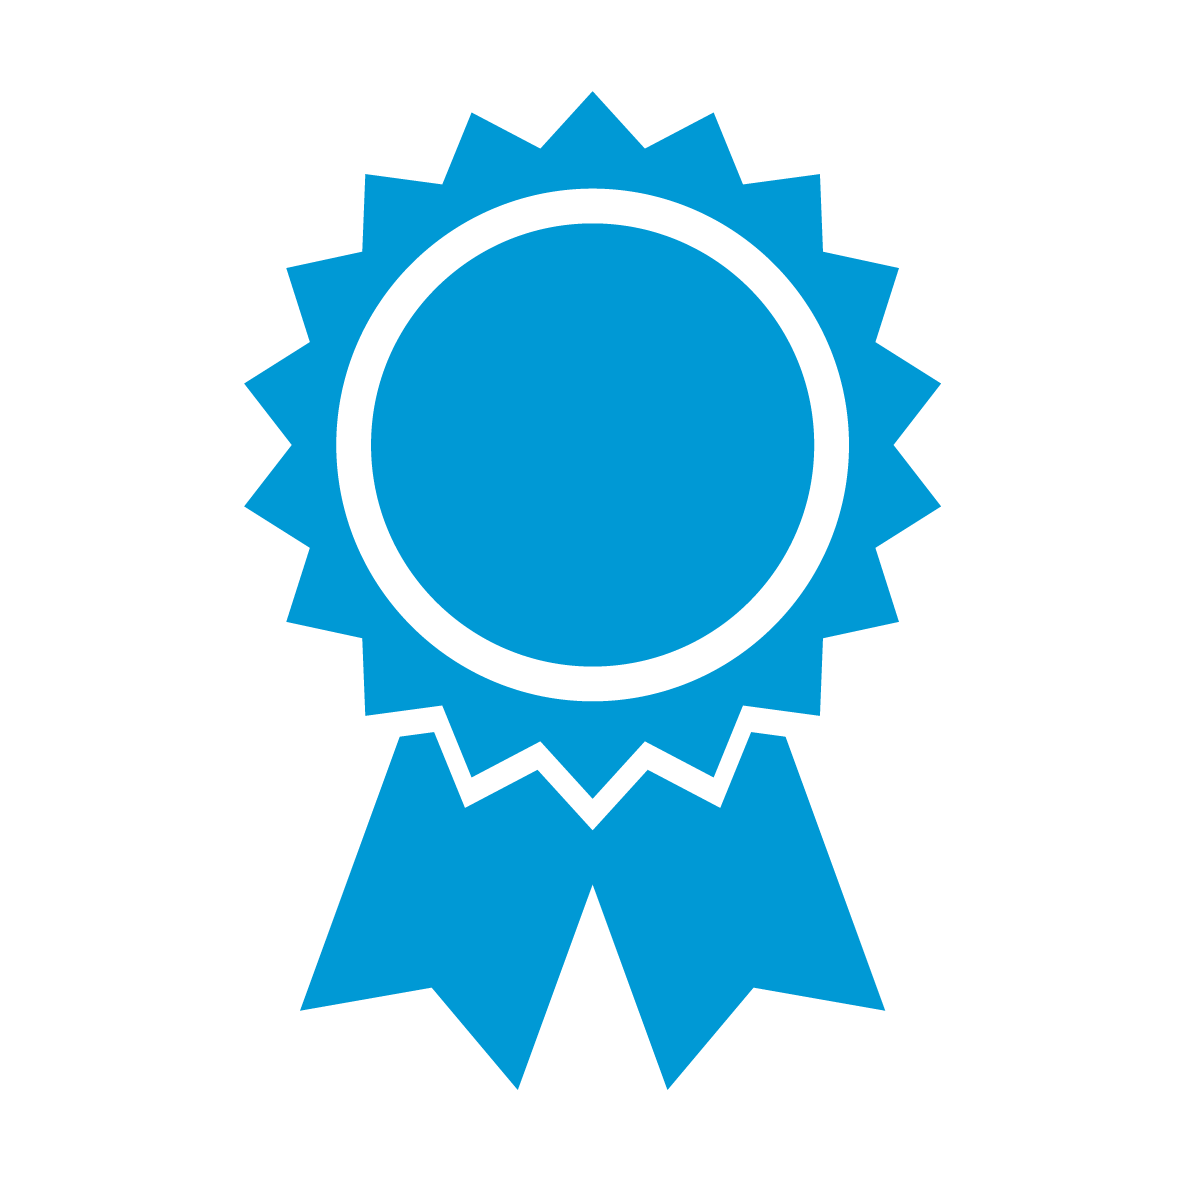 Employer of Choice Icon - a styled blue rosette